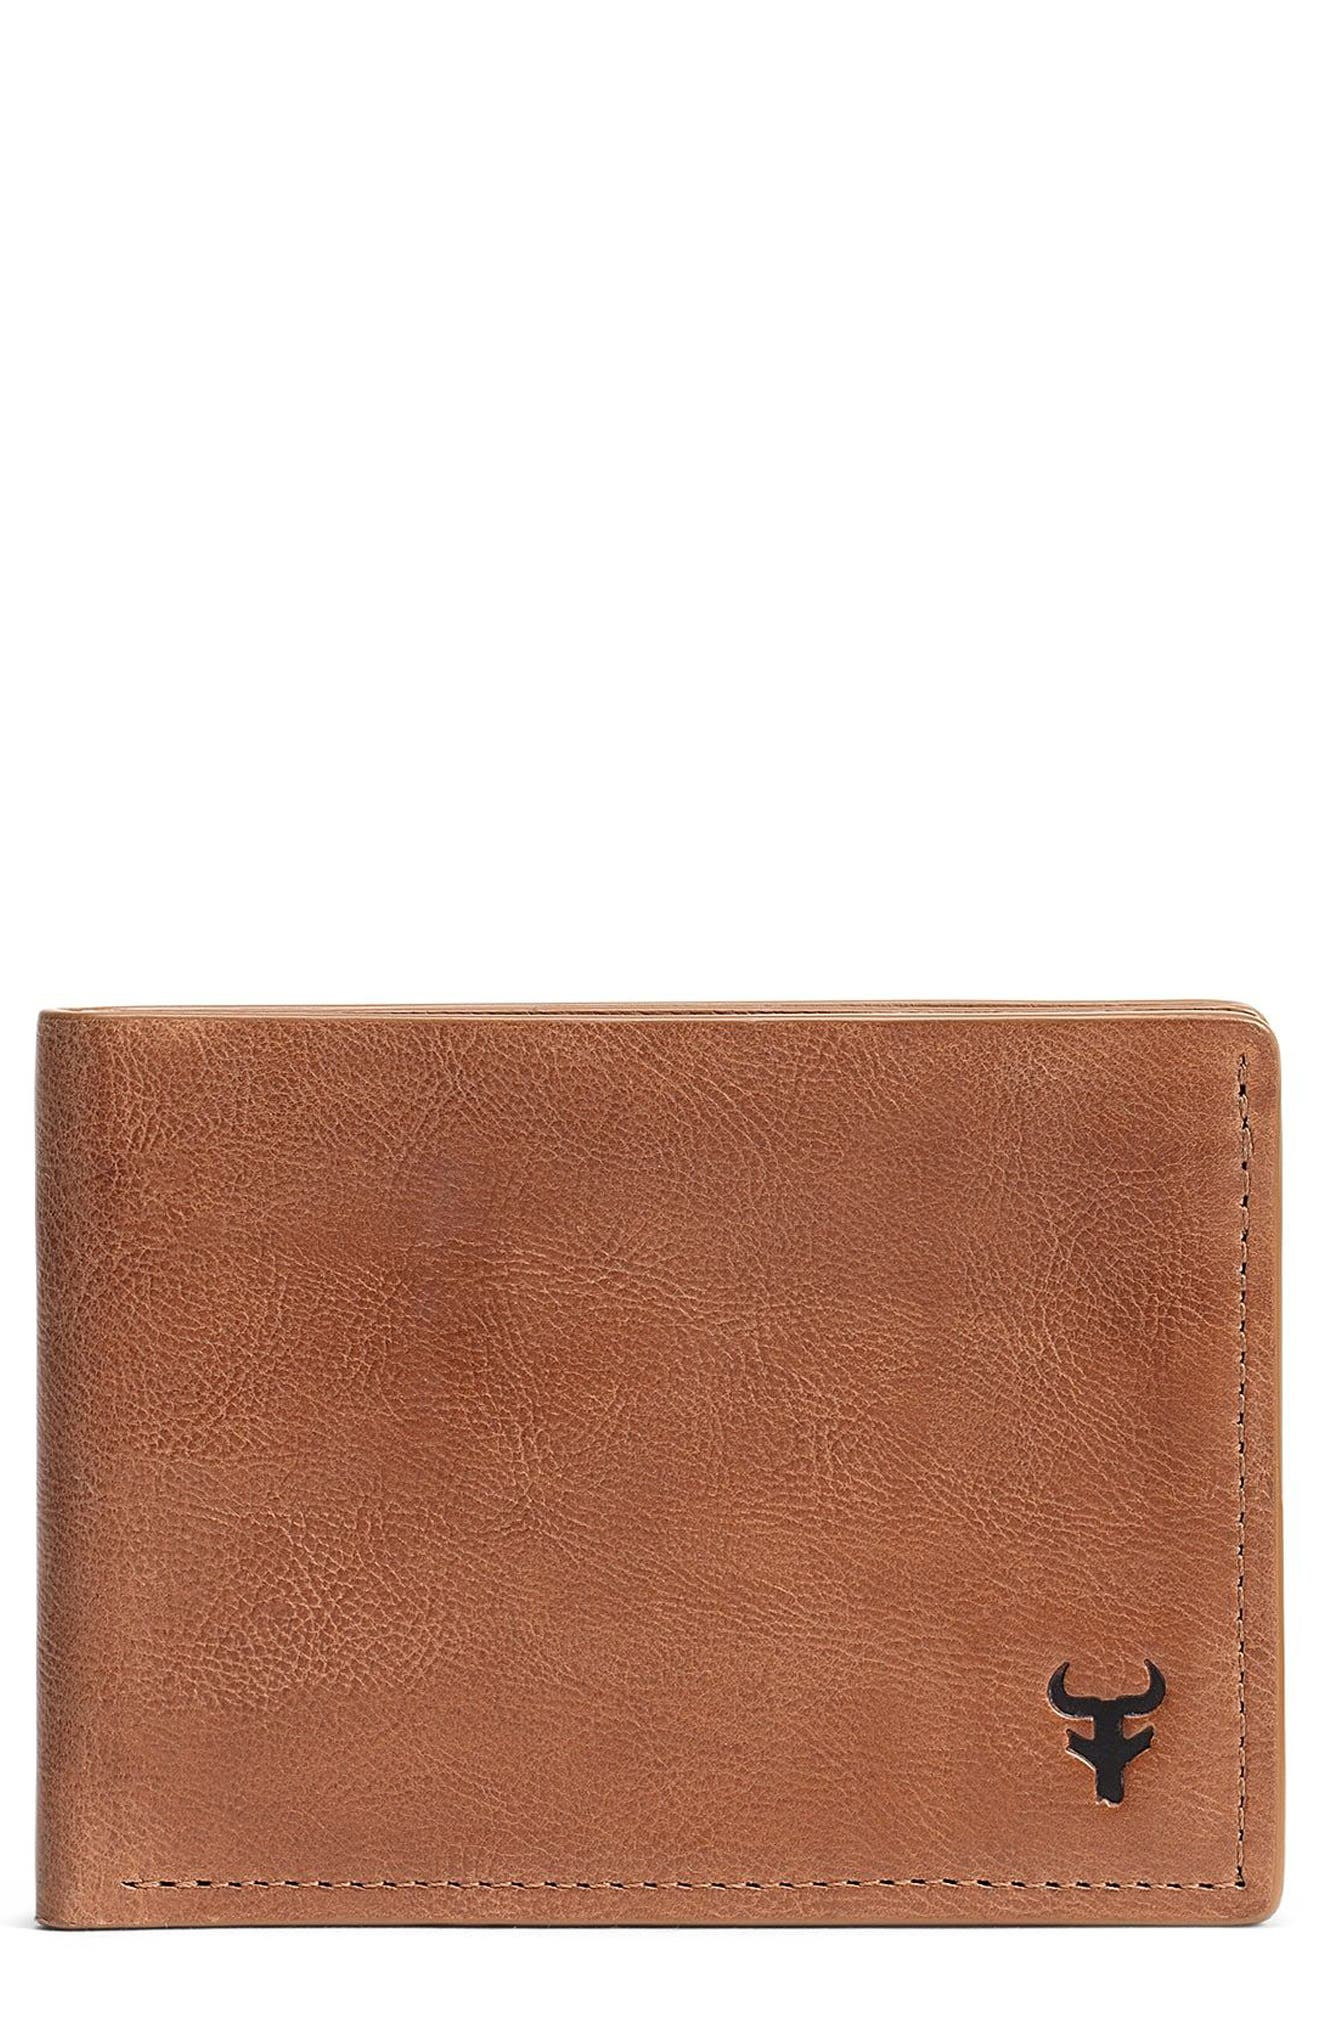 Canyon Super Slim Leather Wallet,                         Main,                         color, Tan